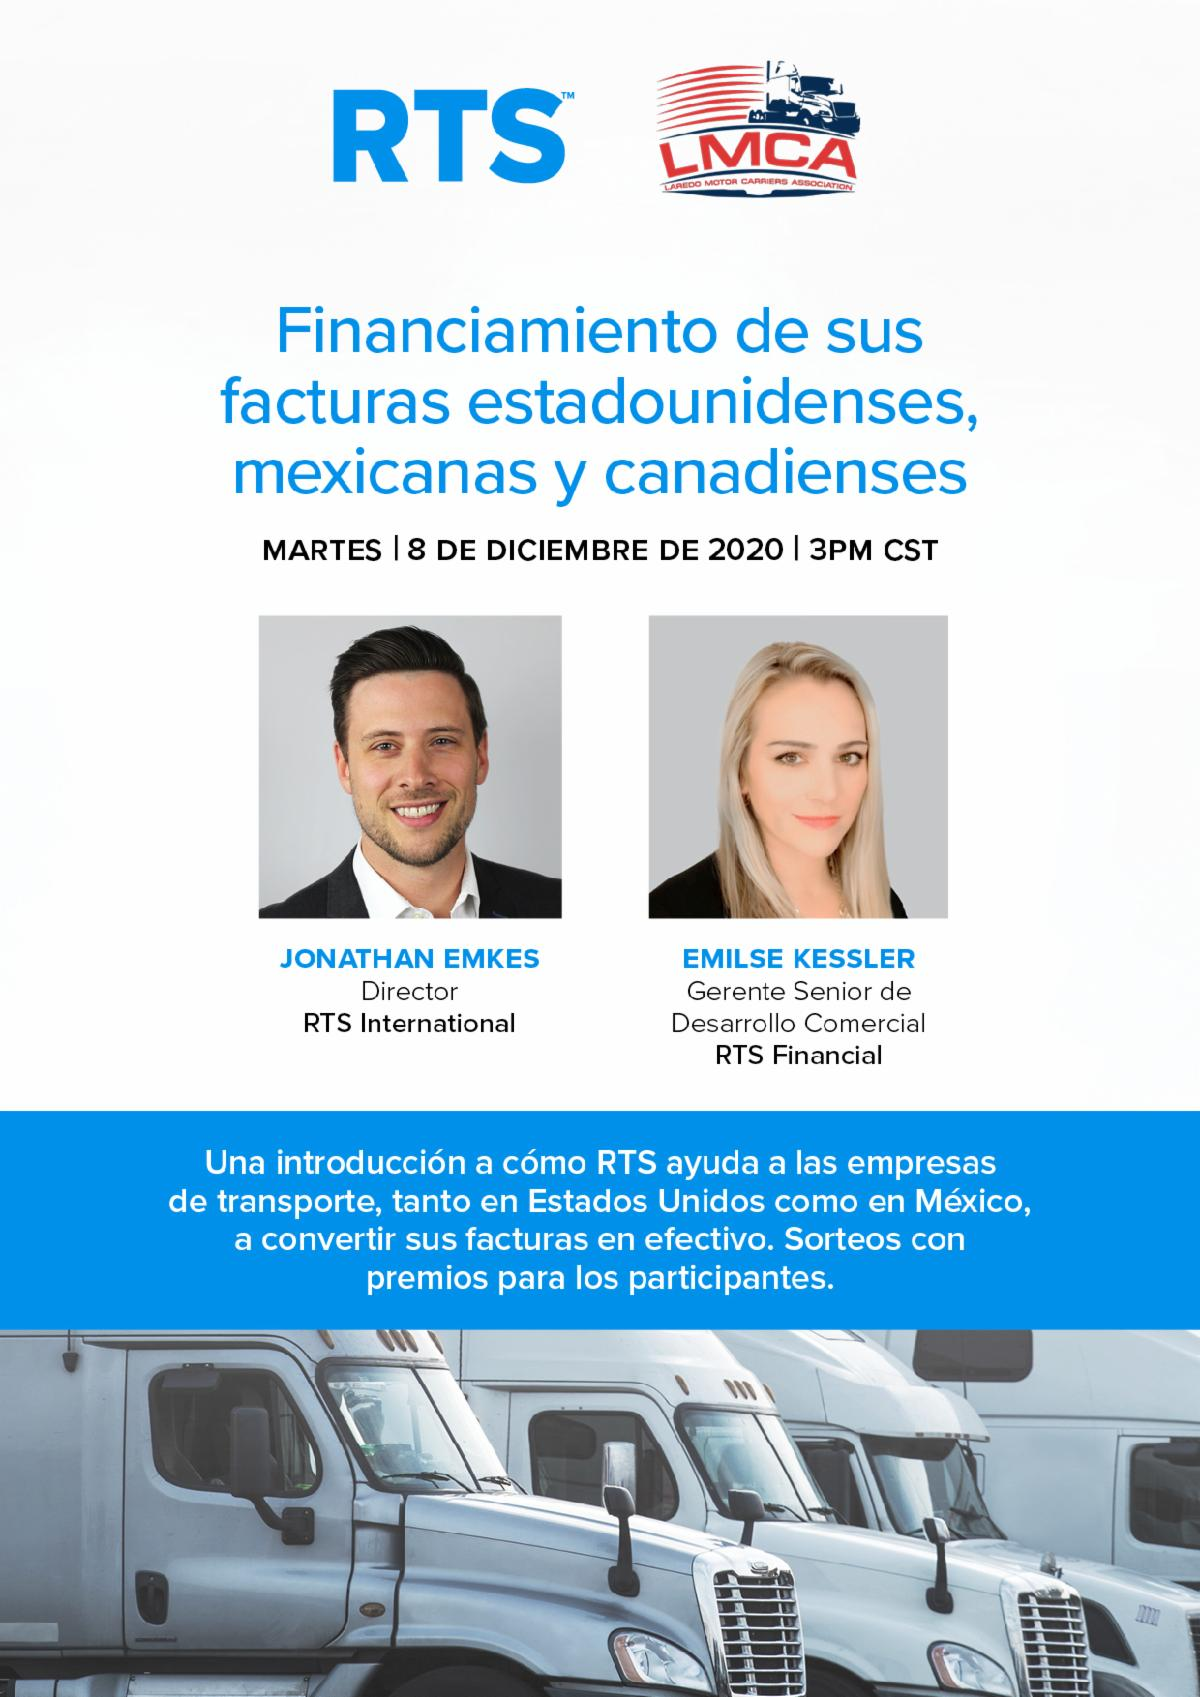 RTS Financiamiento de sus facturas Estadounidense, Mexicanas y Canadienses